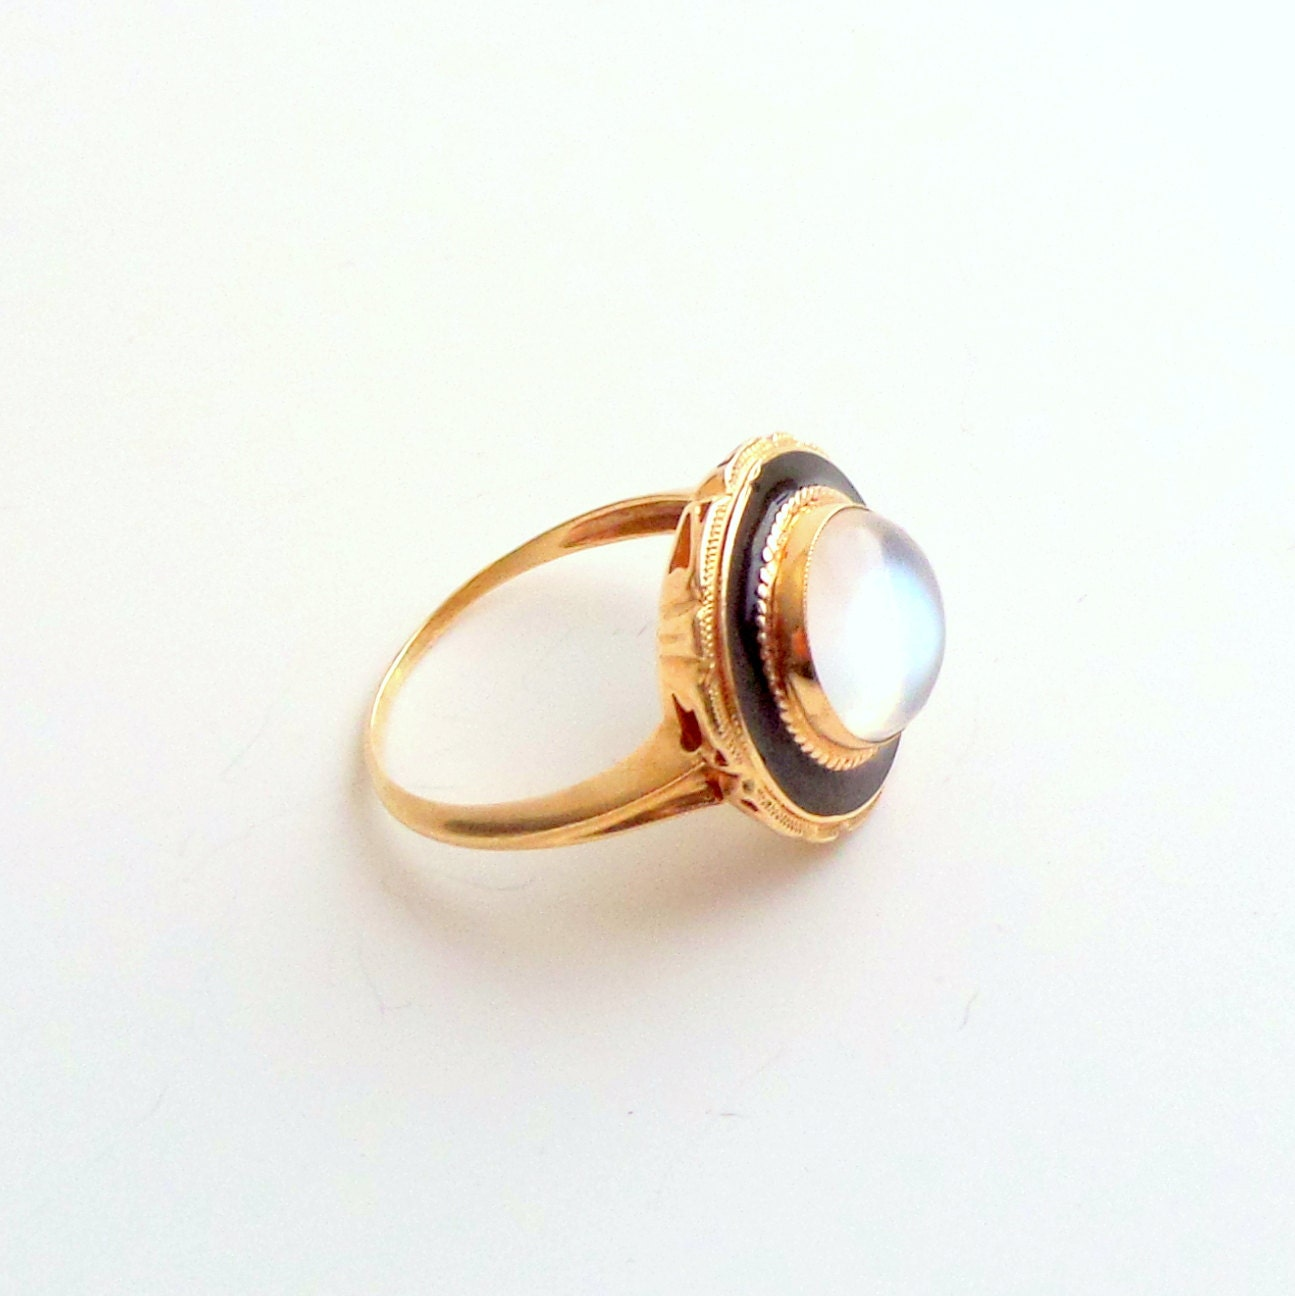 Antique Art Deco Moonstone Ring Enameled Gold